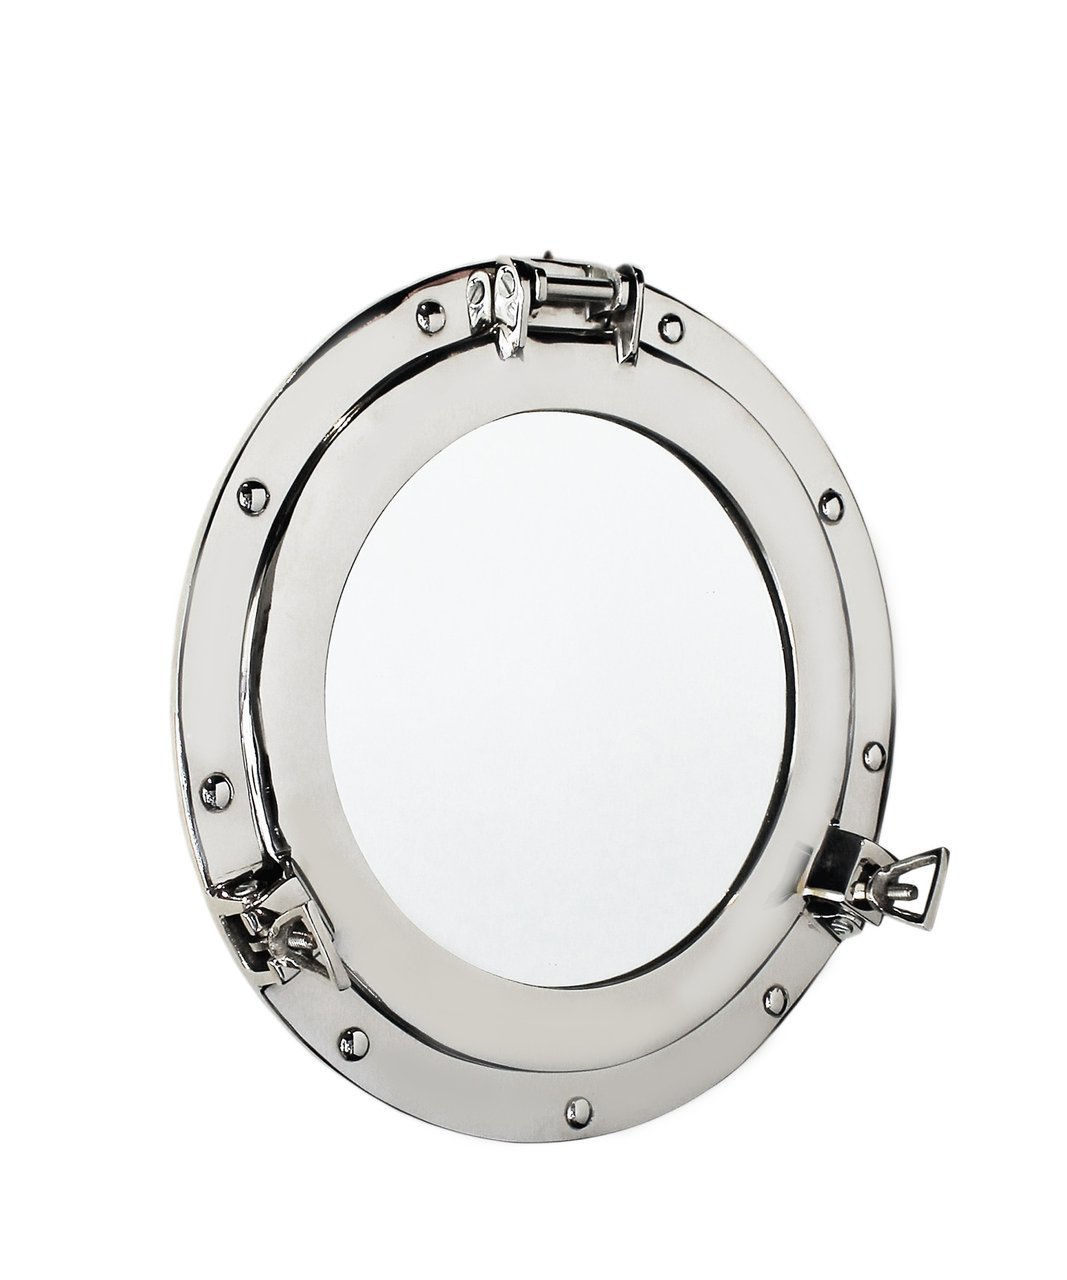 Nagina International 12 Nautical Nickel Plated Premium Ship's Porthole Mirror | Maritime Wall Decor Plane Mirror